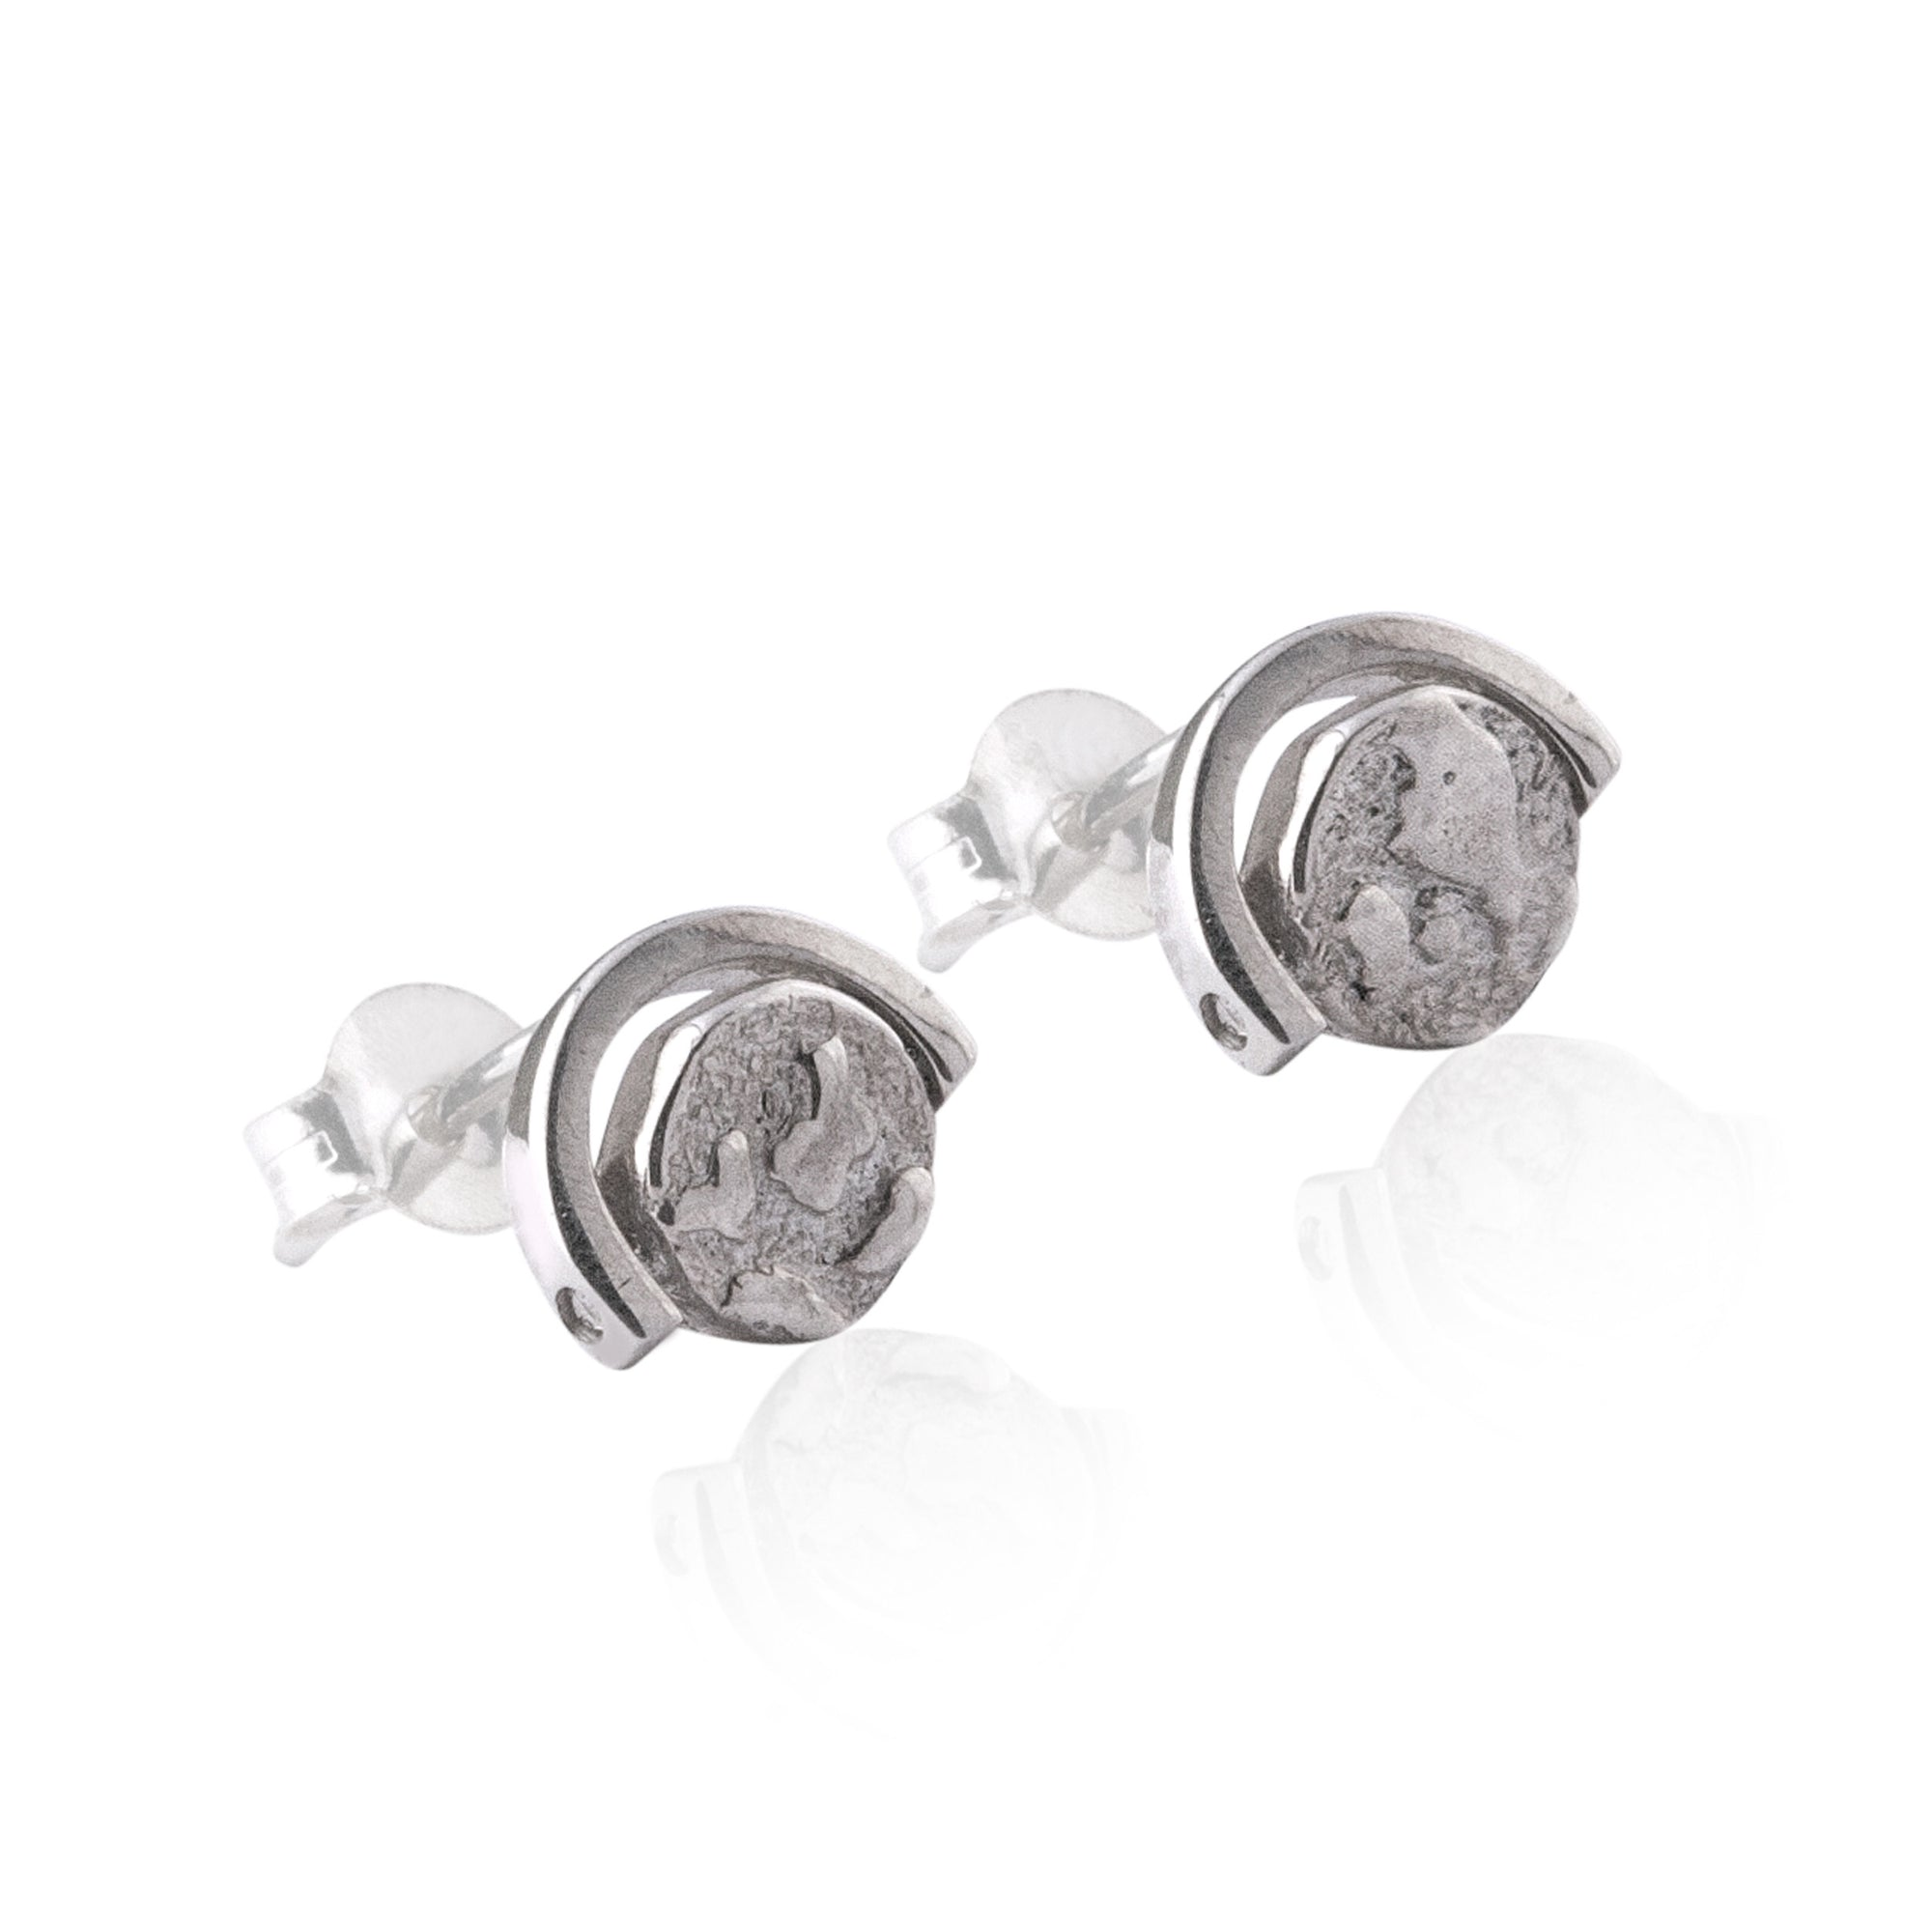 World Globe Earrings - Bon Voyage Collection of Jewellery by La Luna Rose